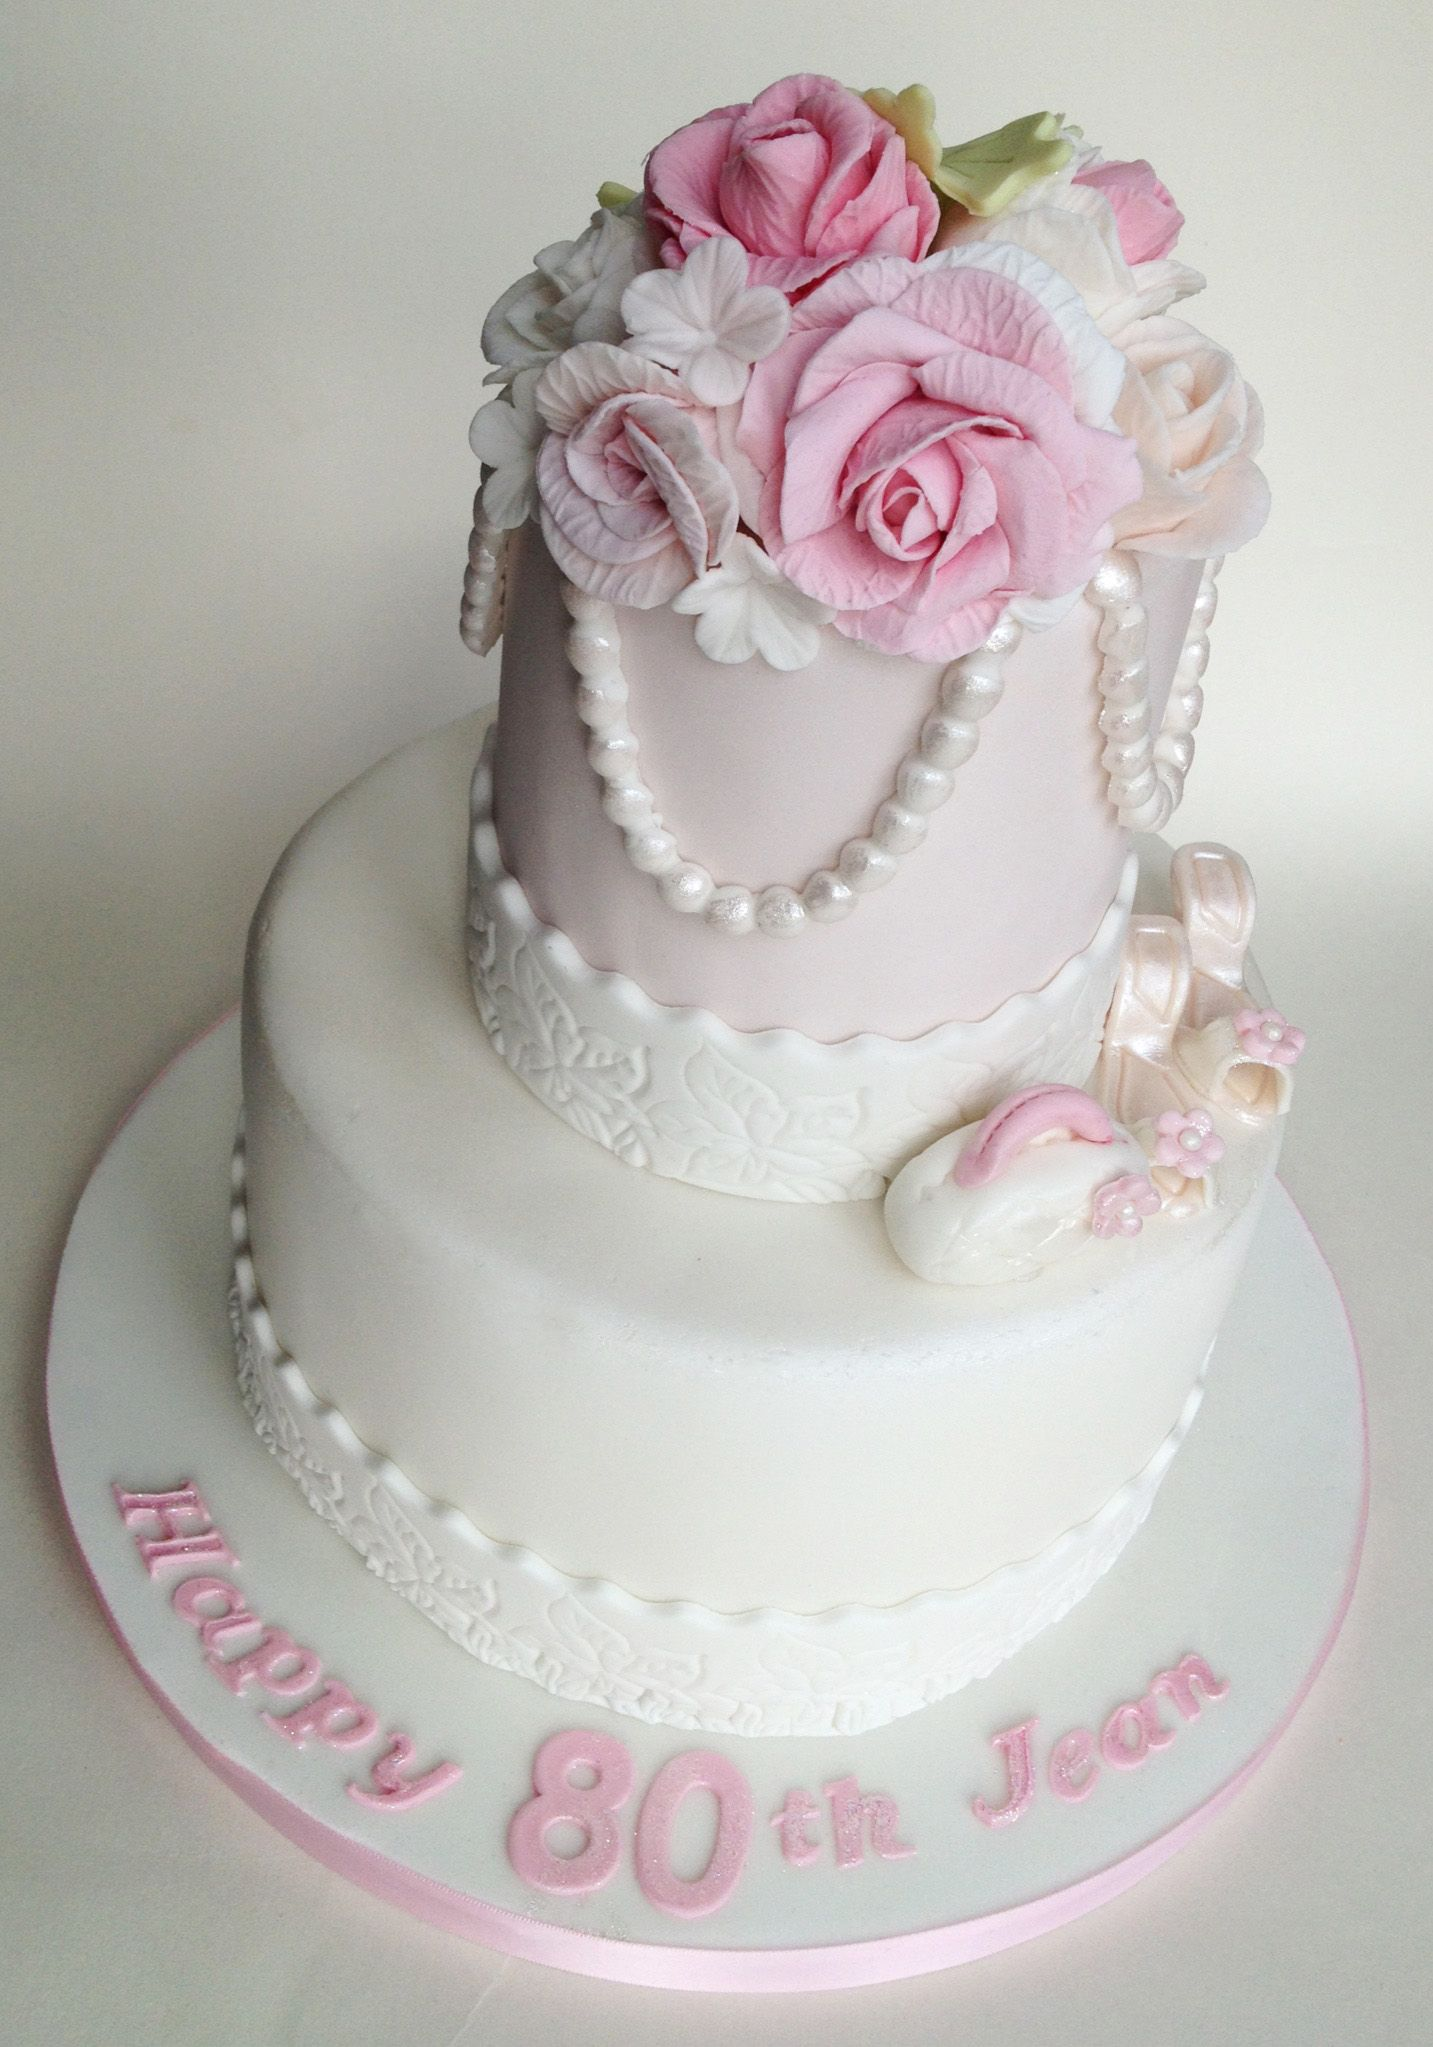 eightieth birthday cakes Google Search ideas for Maureen